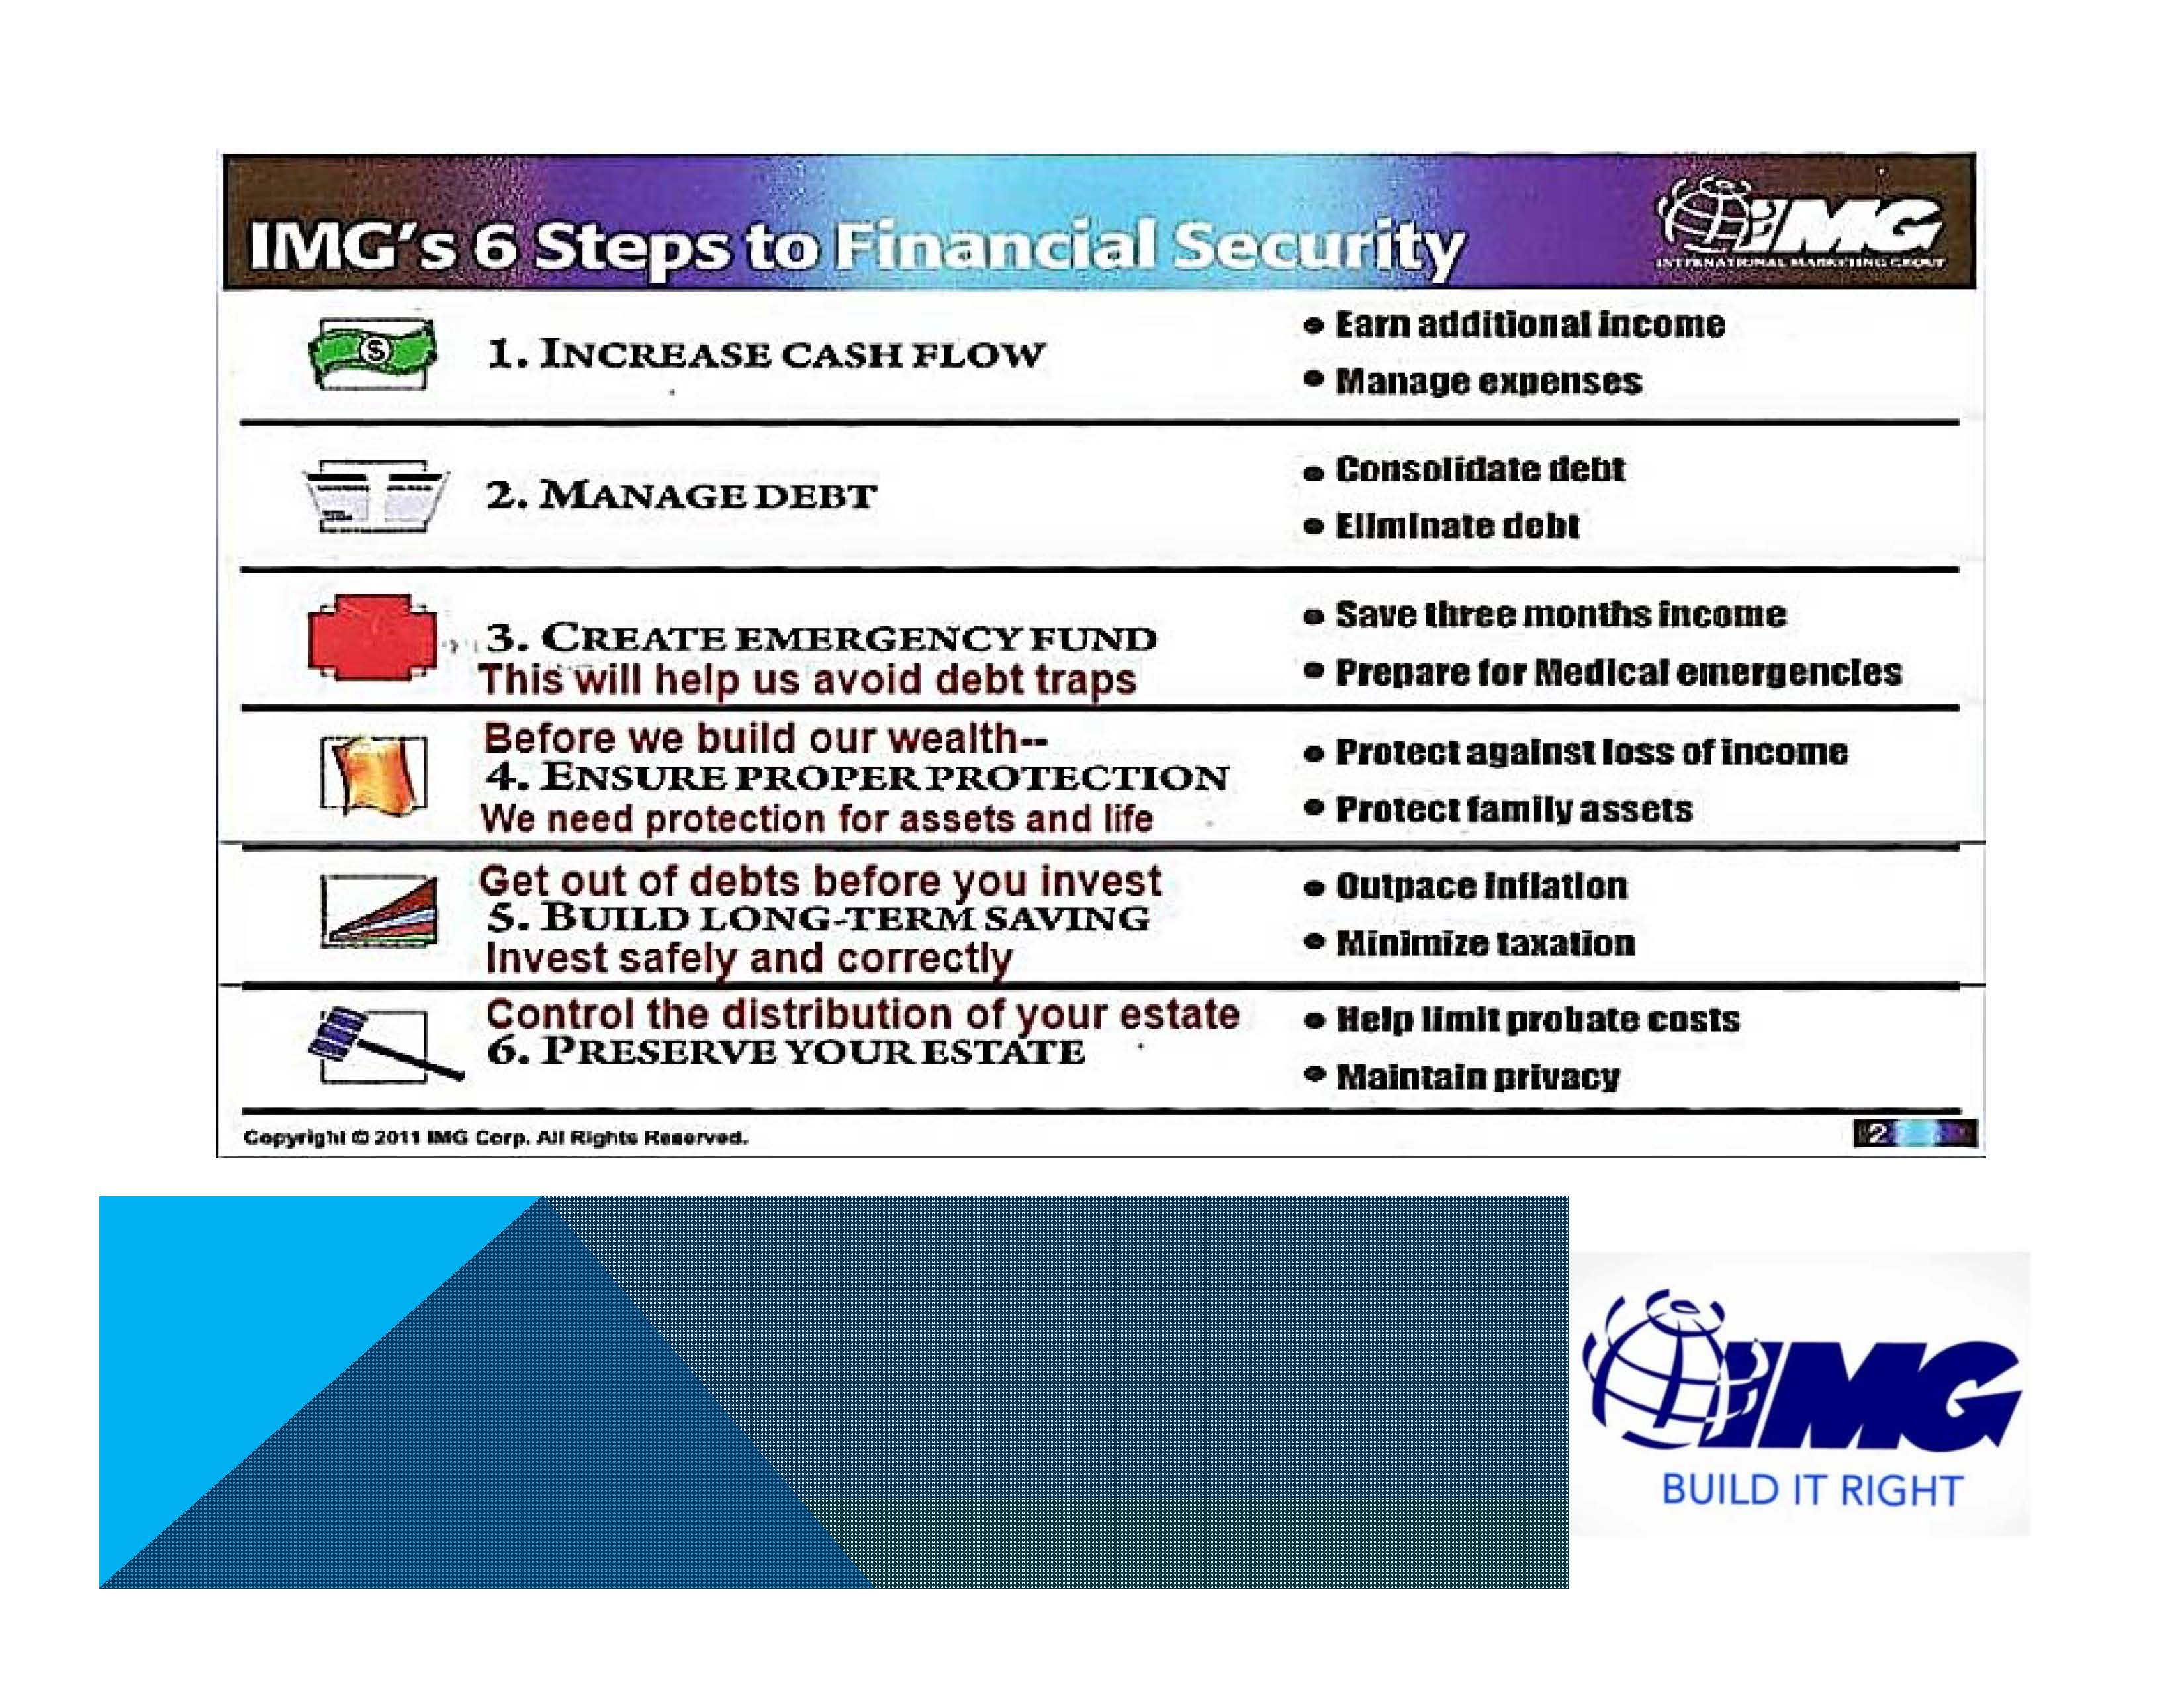 6 steps to Financial Security by IMG Philippines